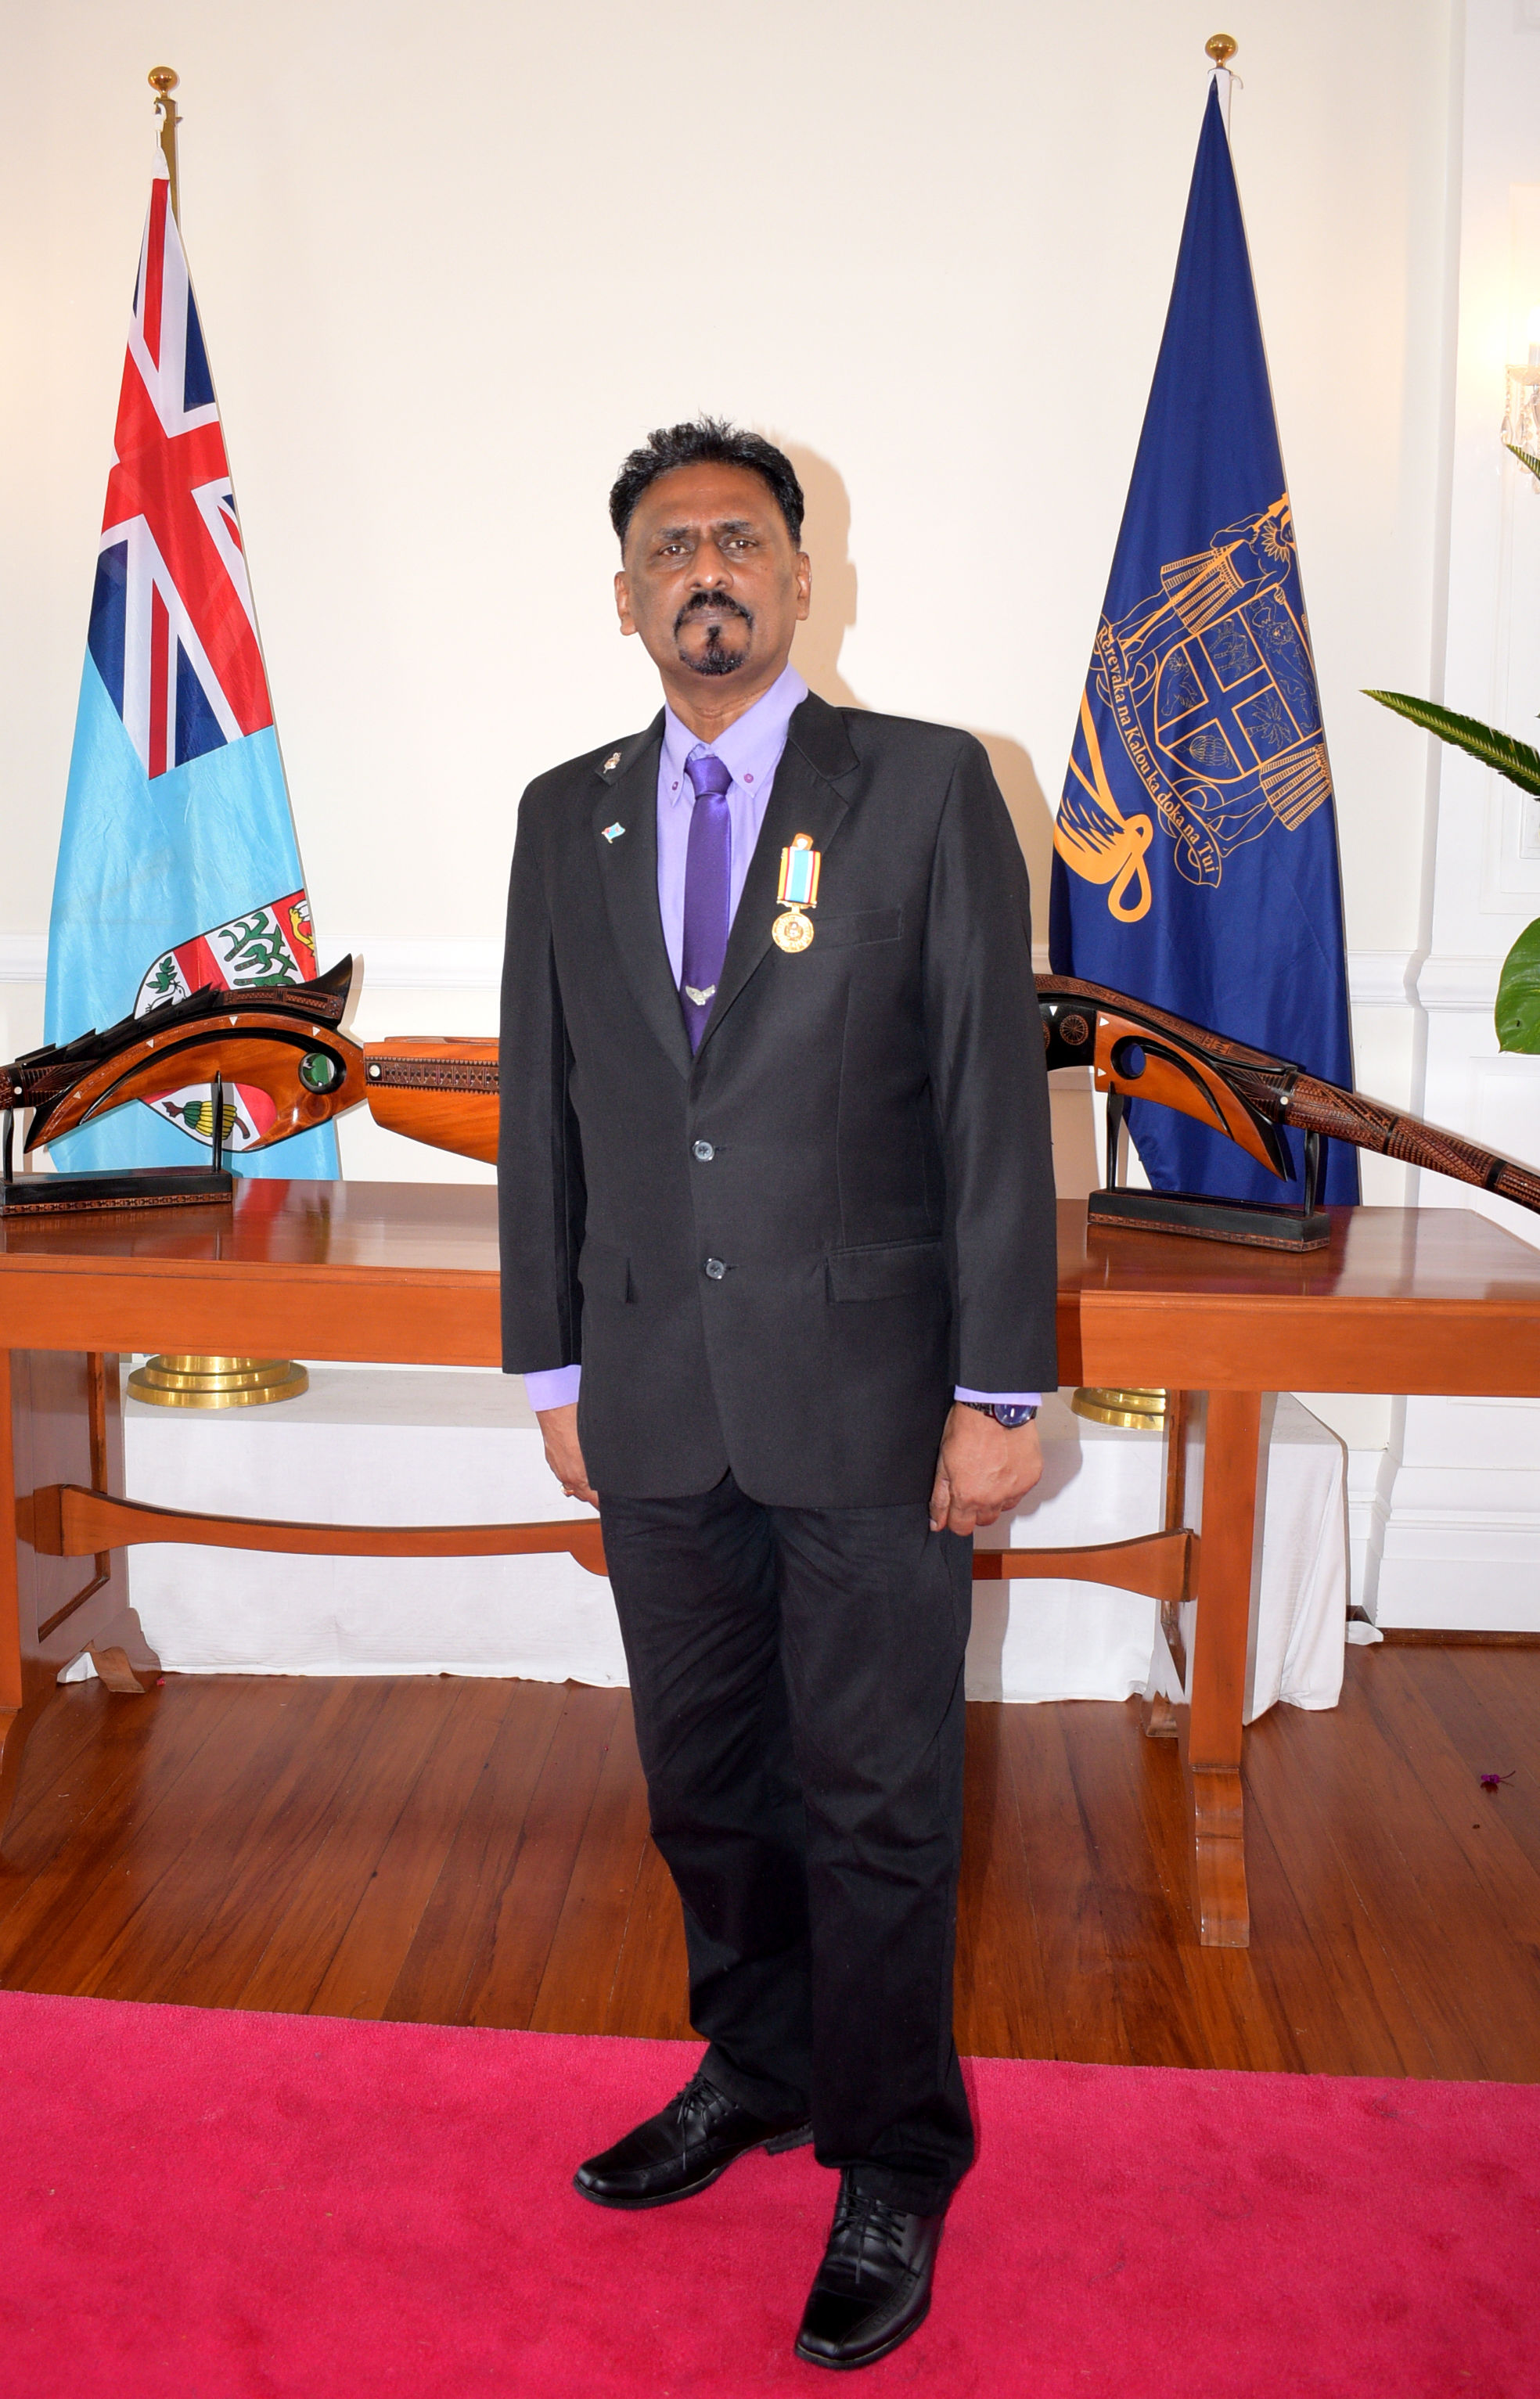 Former School teacher, Subhash Chandra after receiving 50th anniversary of Independence commemorative medal during special investiture ceremony at State House on October 8, 2020. Photo: Ronald Kumar.